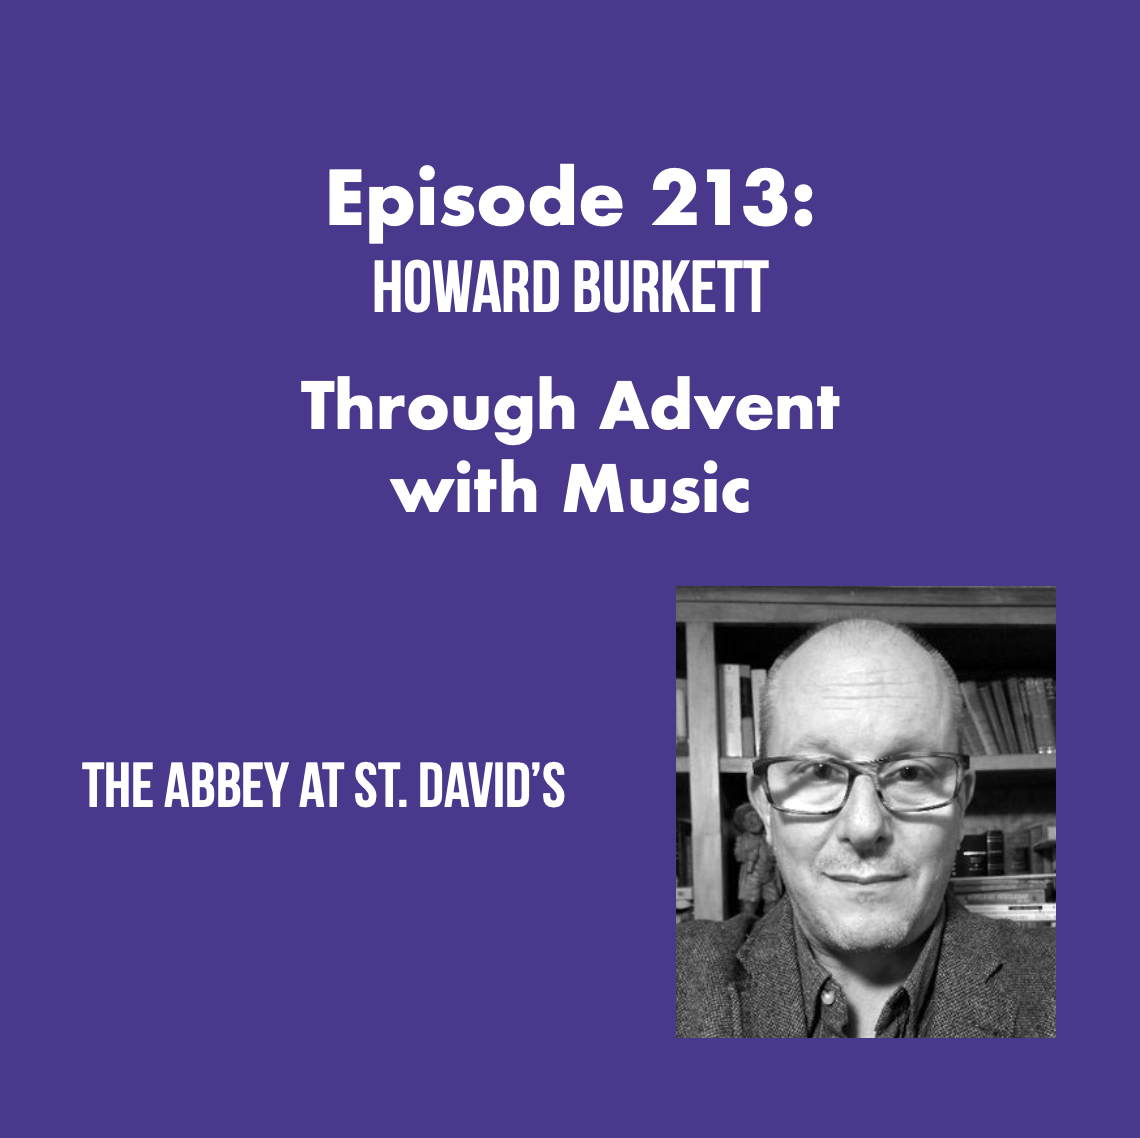 Episode 213: Through Advent with Music with Howard Burkett